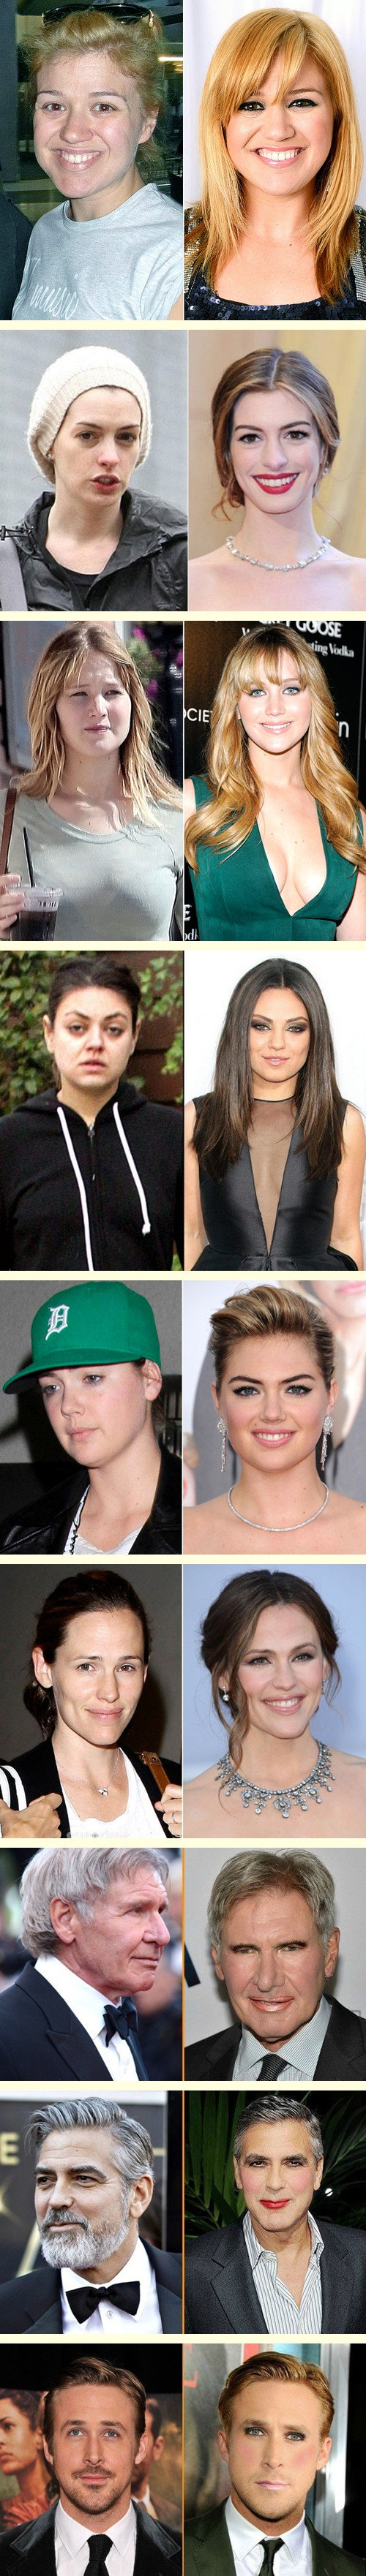 Celebs with/without makeup. .